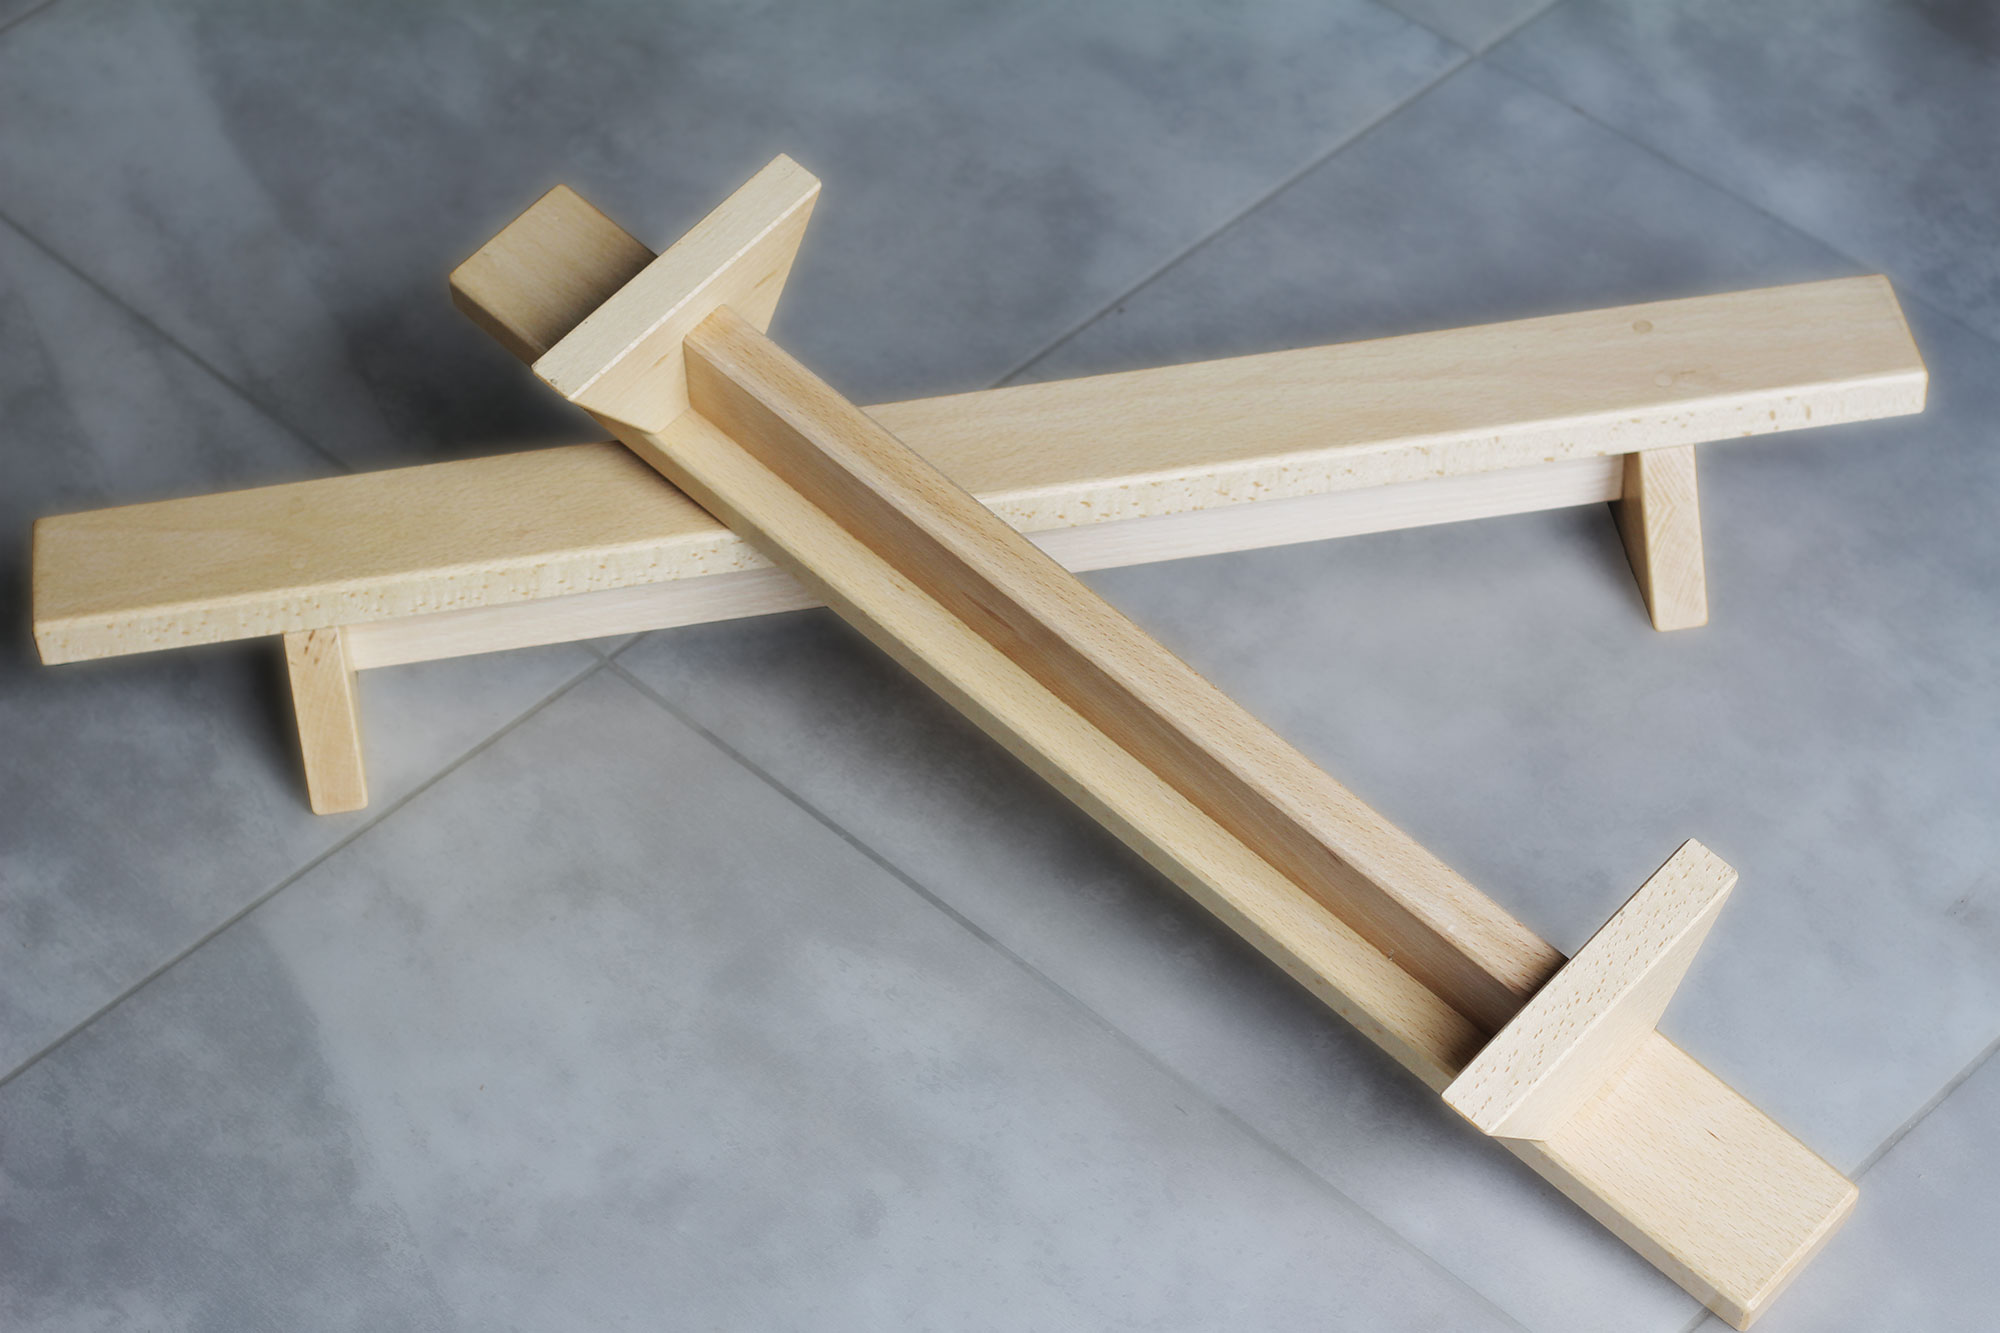 shena pushup boards are hand made from hardwood by UK craftsman